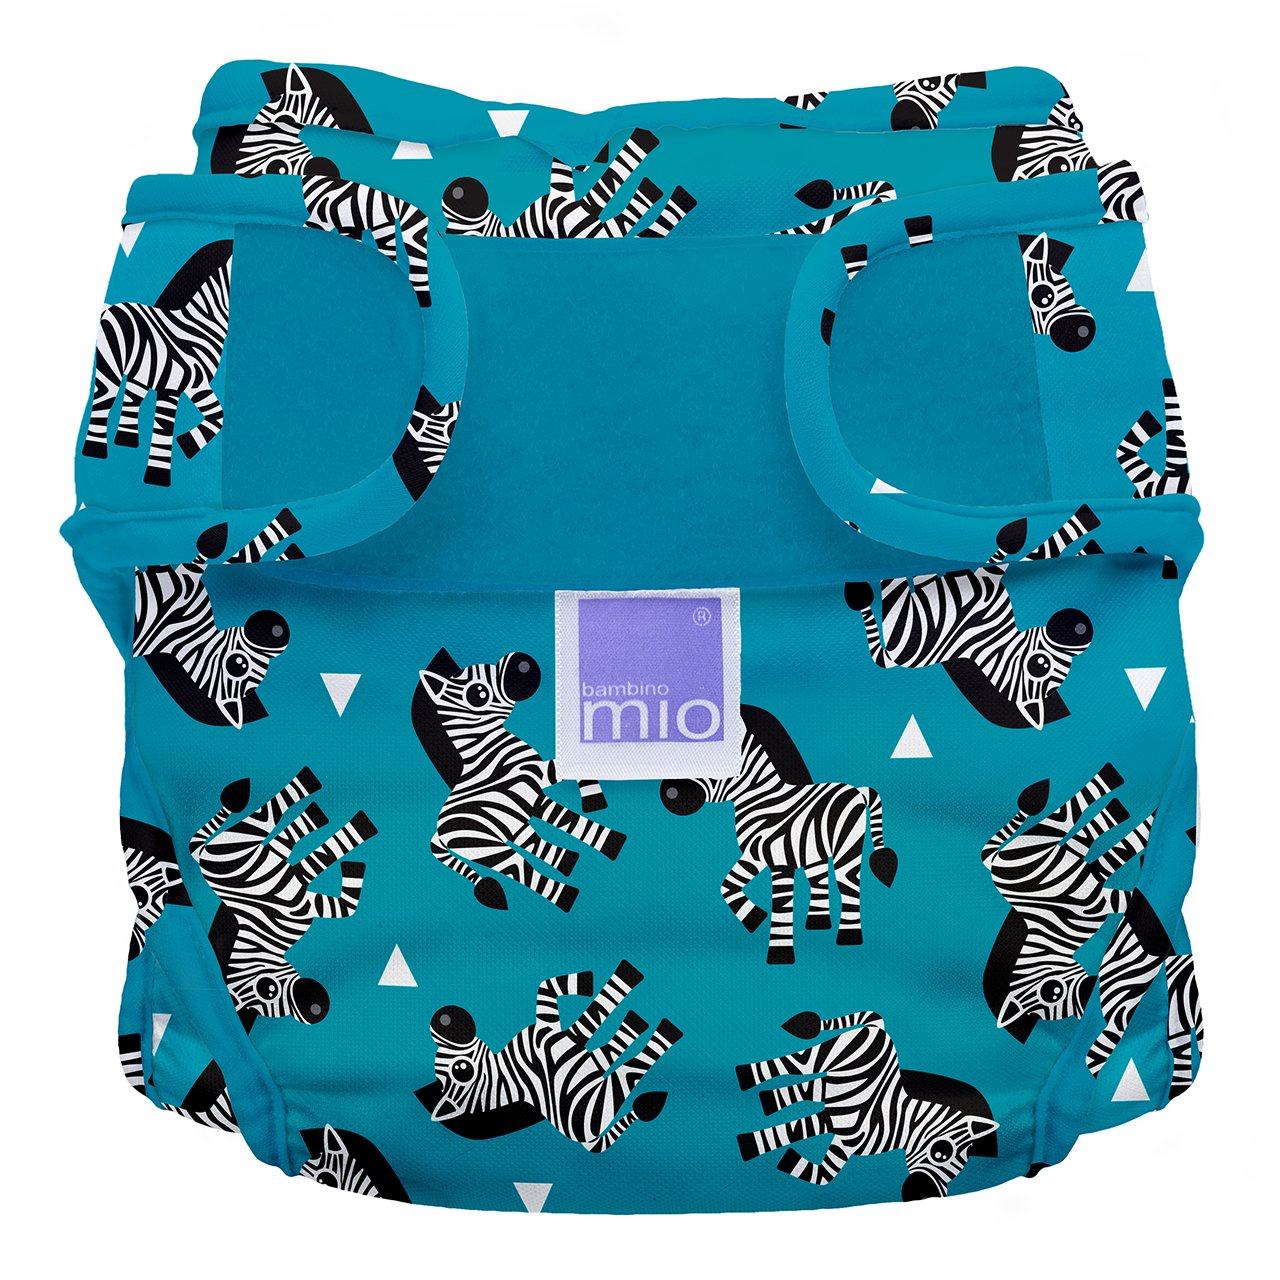 Bambino Mio, mioduo Cloth Diaper Cover, Zebra Crossing, Size 2 (21lbs+)